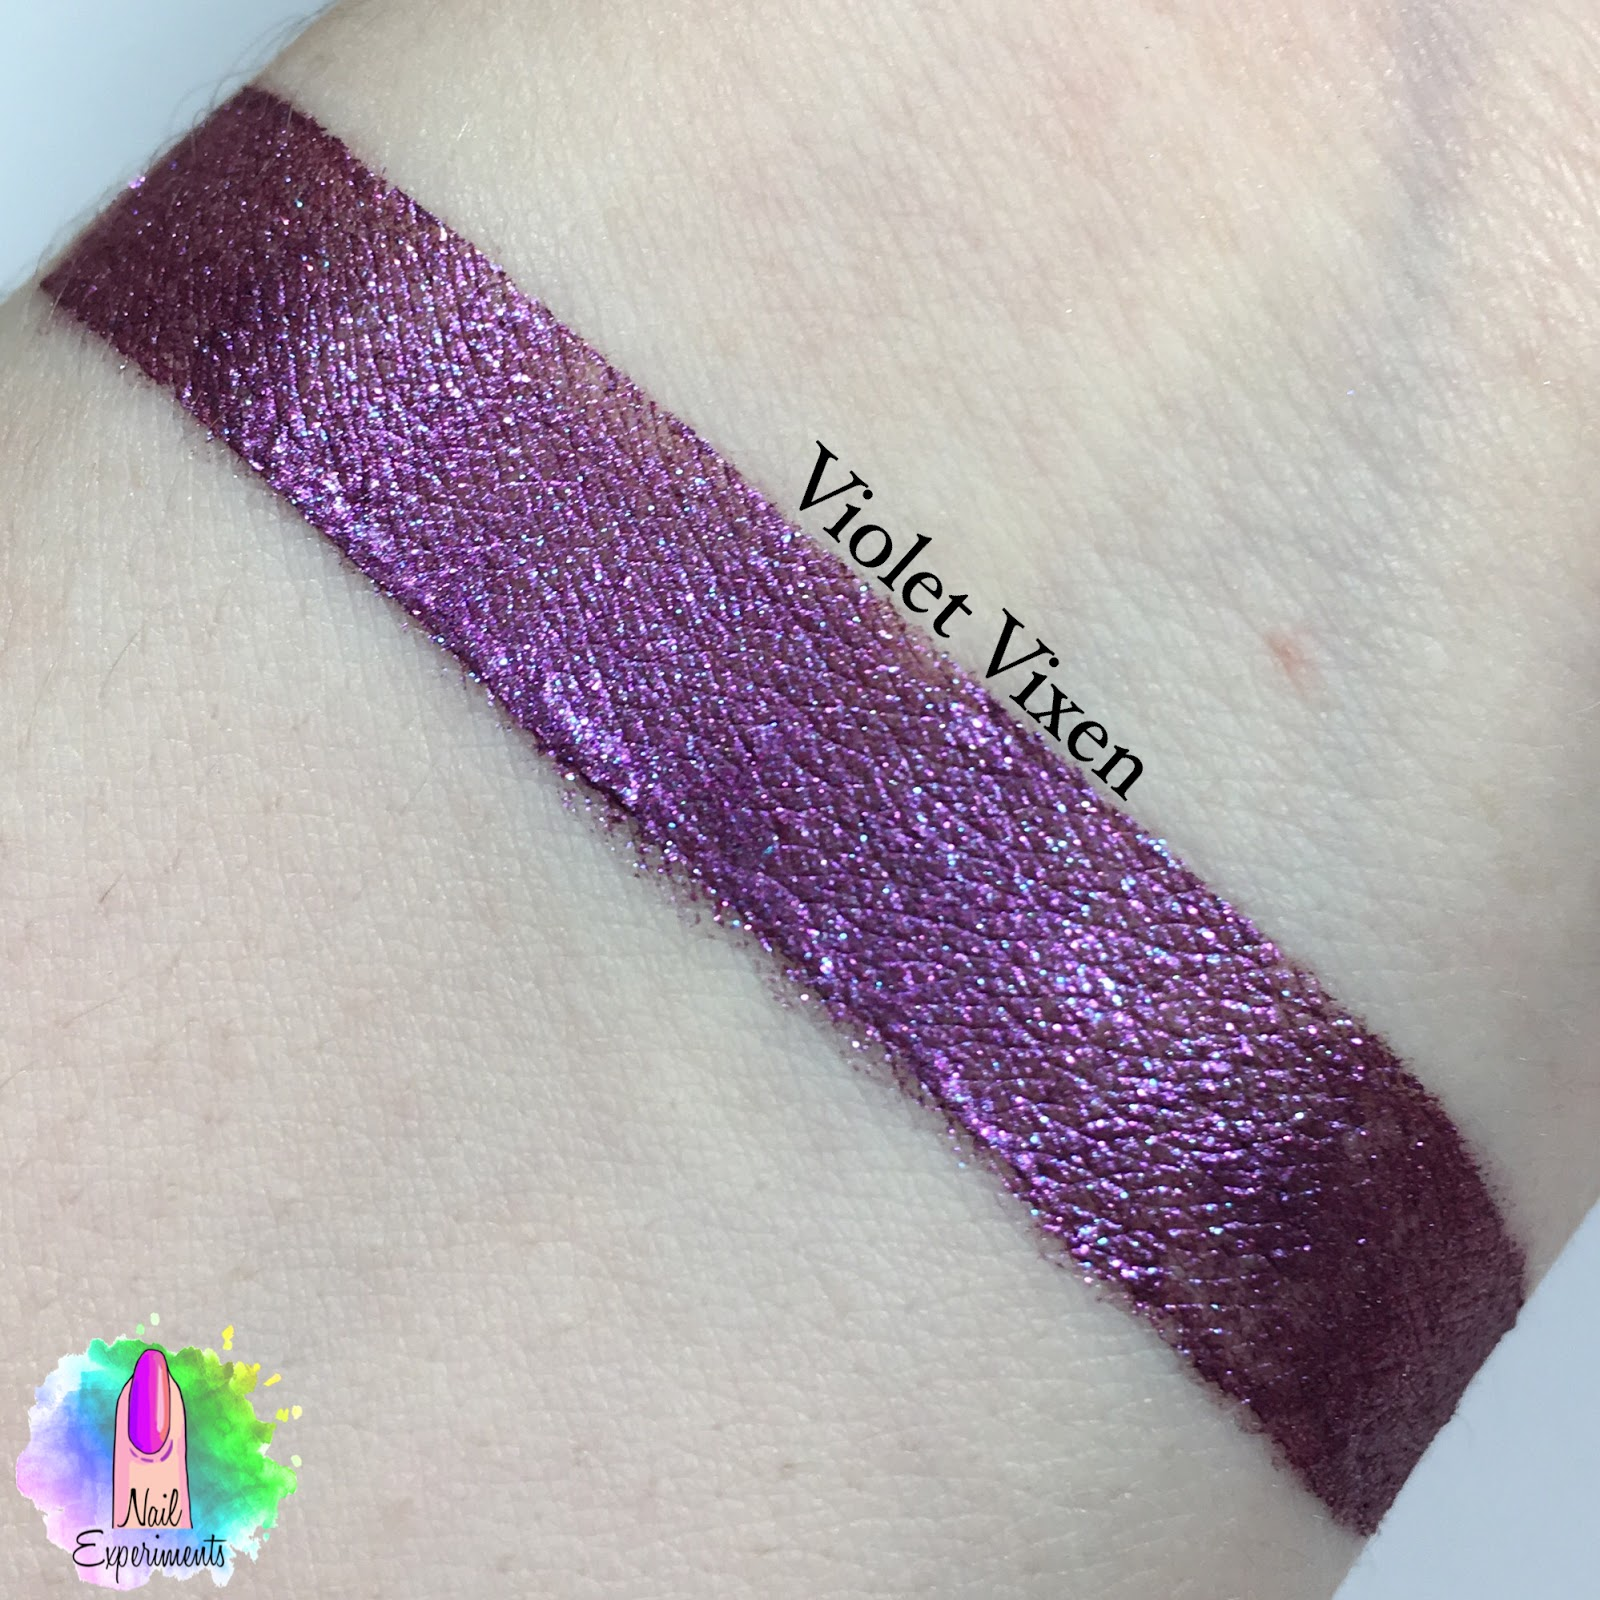 Stila magnificent metals glitter and glow liquid eye shadow swatch in violet vixen